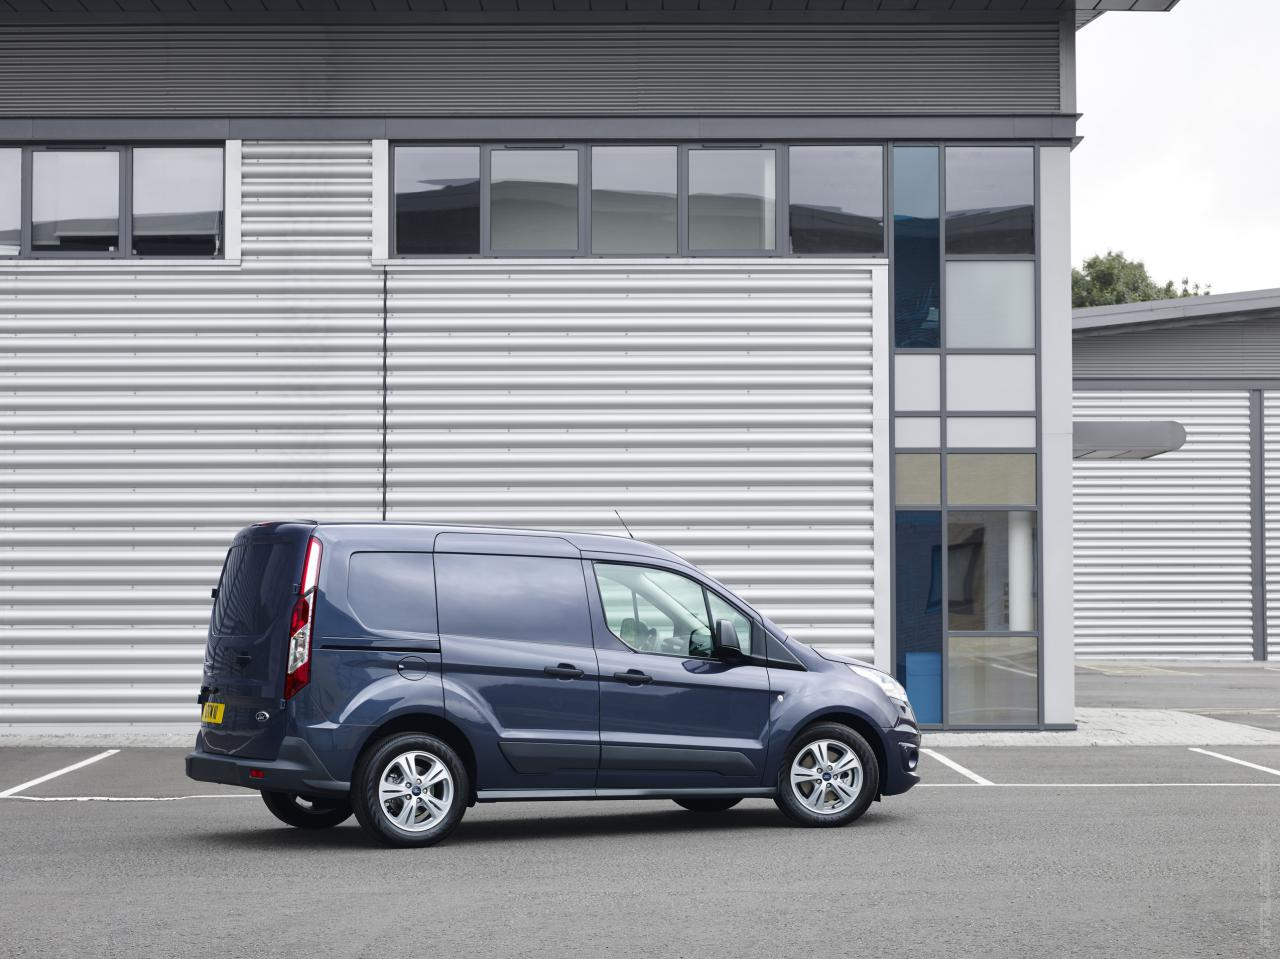 Ford Transit Connect image download free Wallpaper